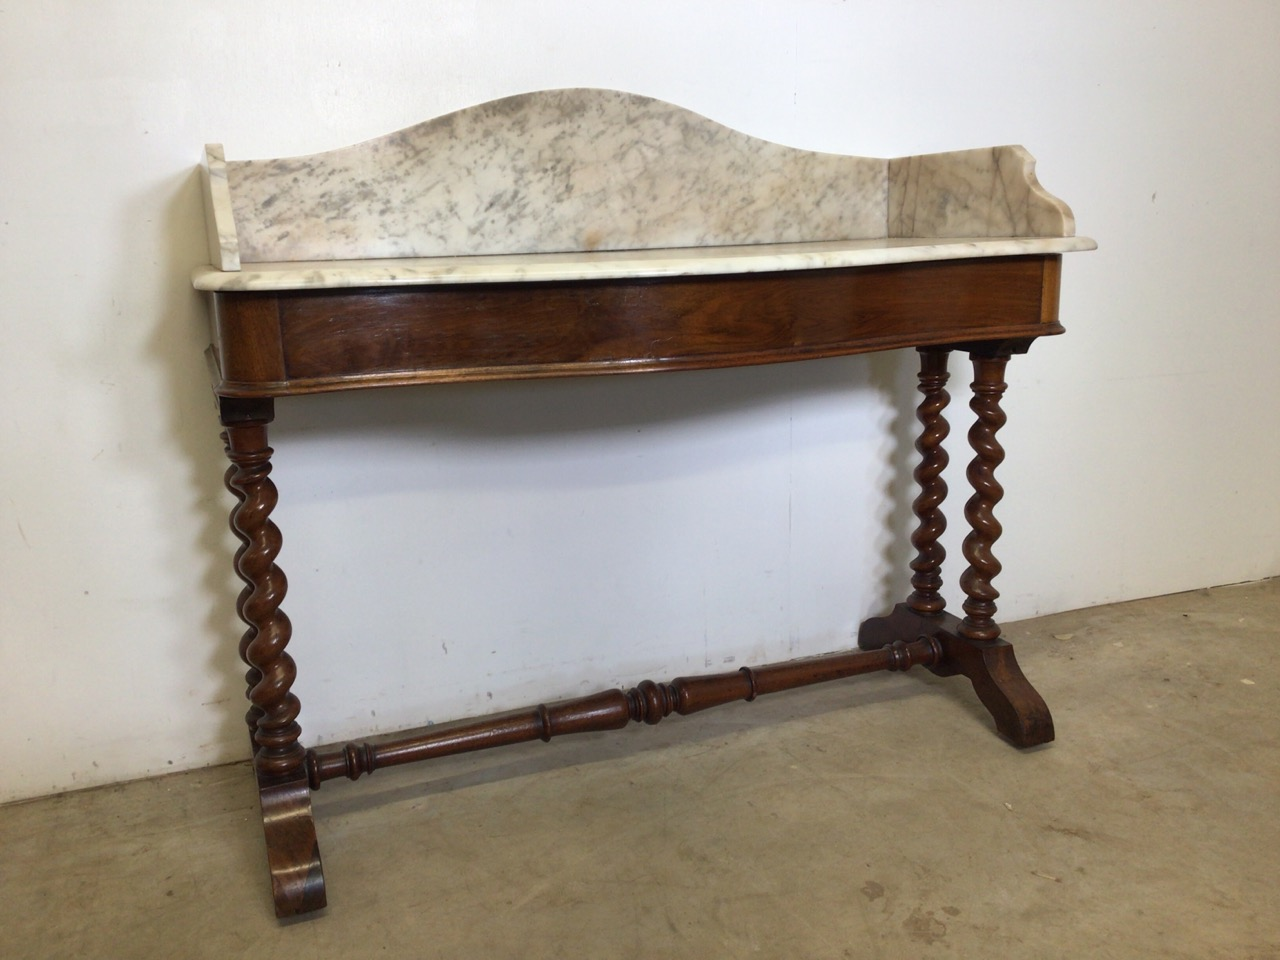 A serpentine front mahogany marble topped wash stand with large barley twist legs and turned